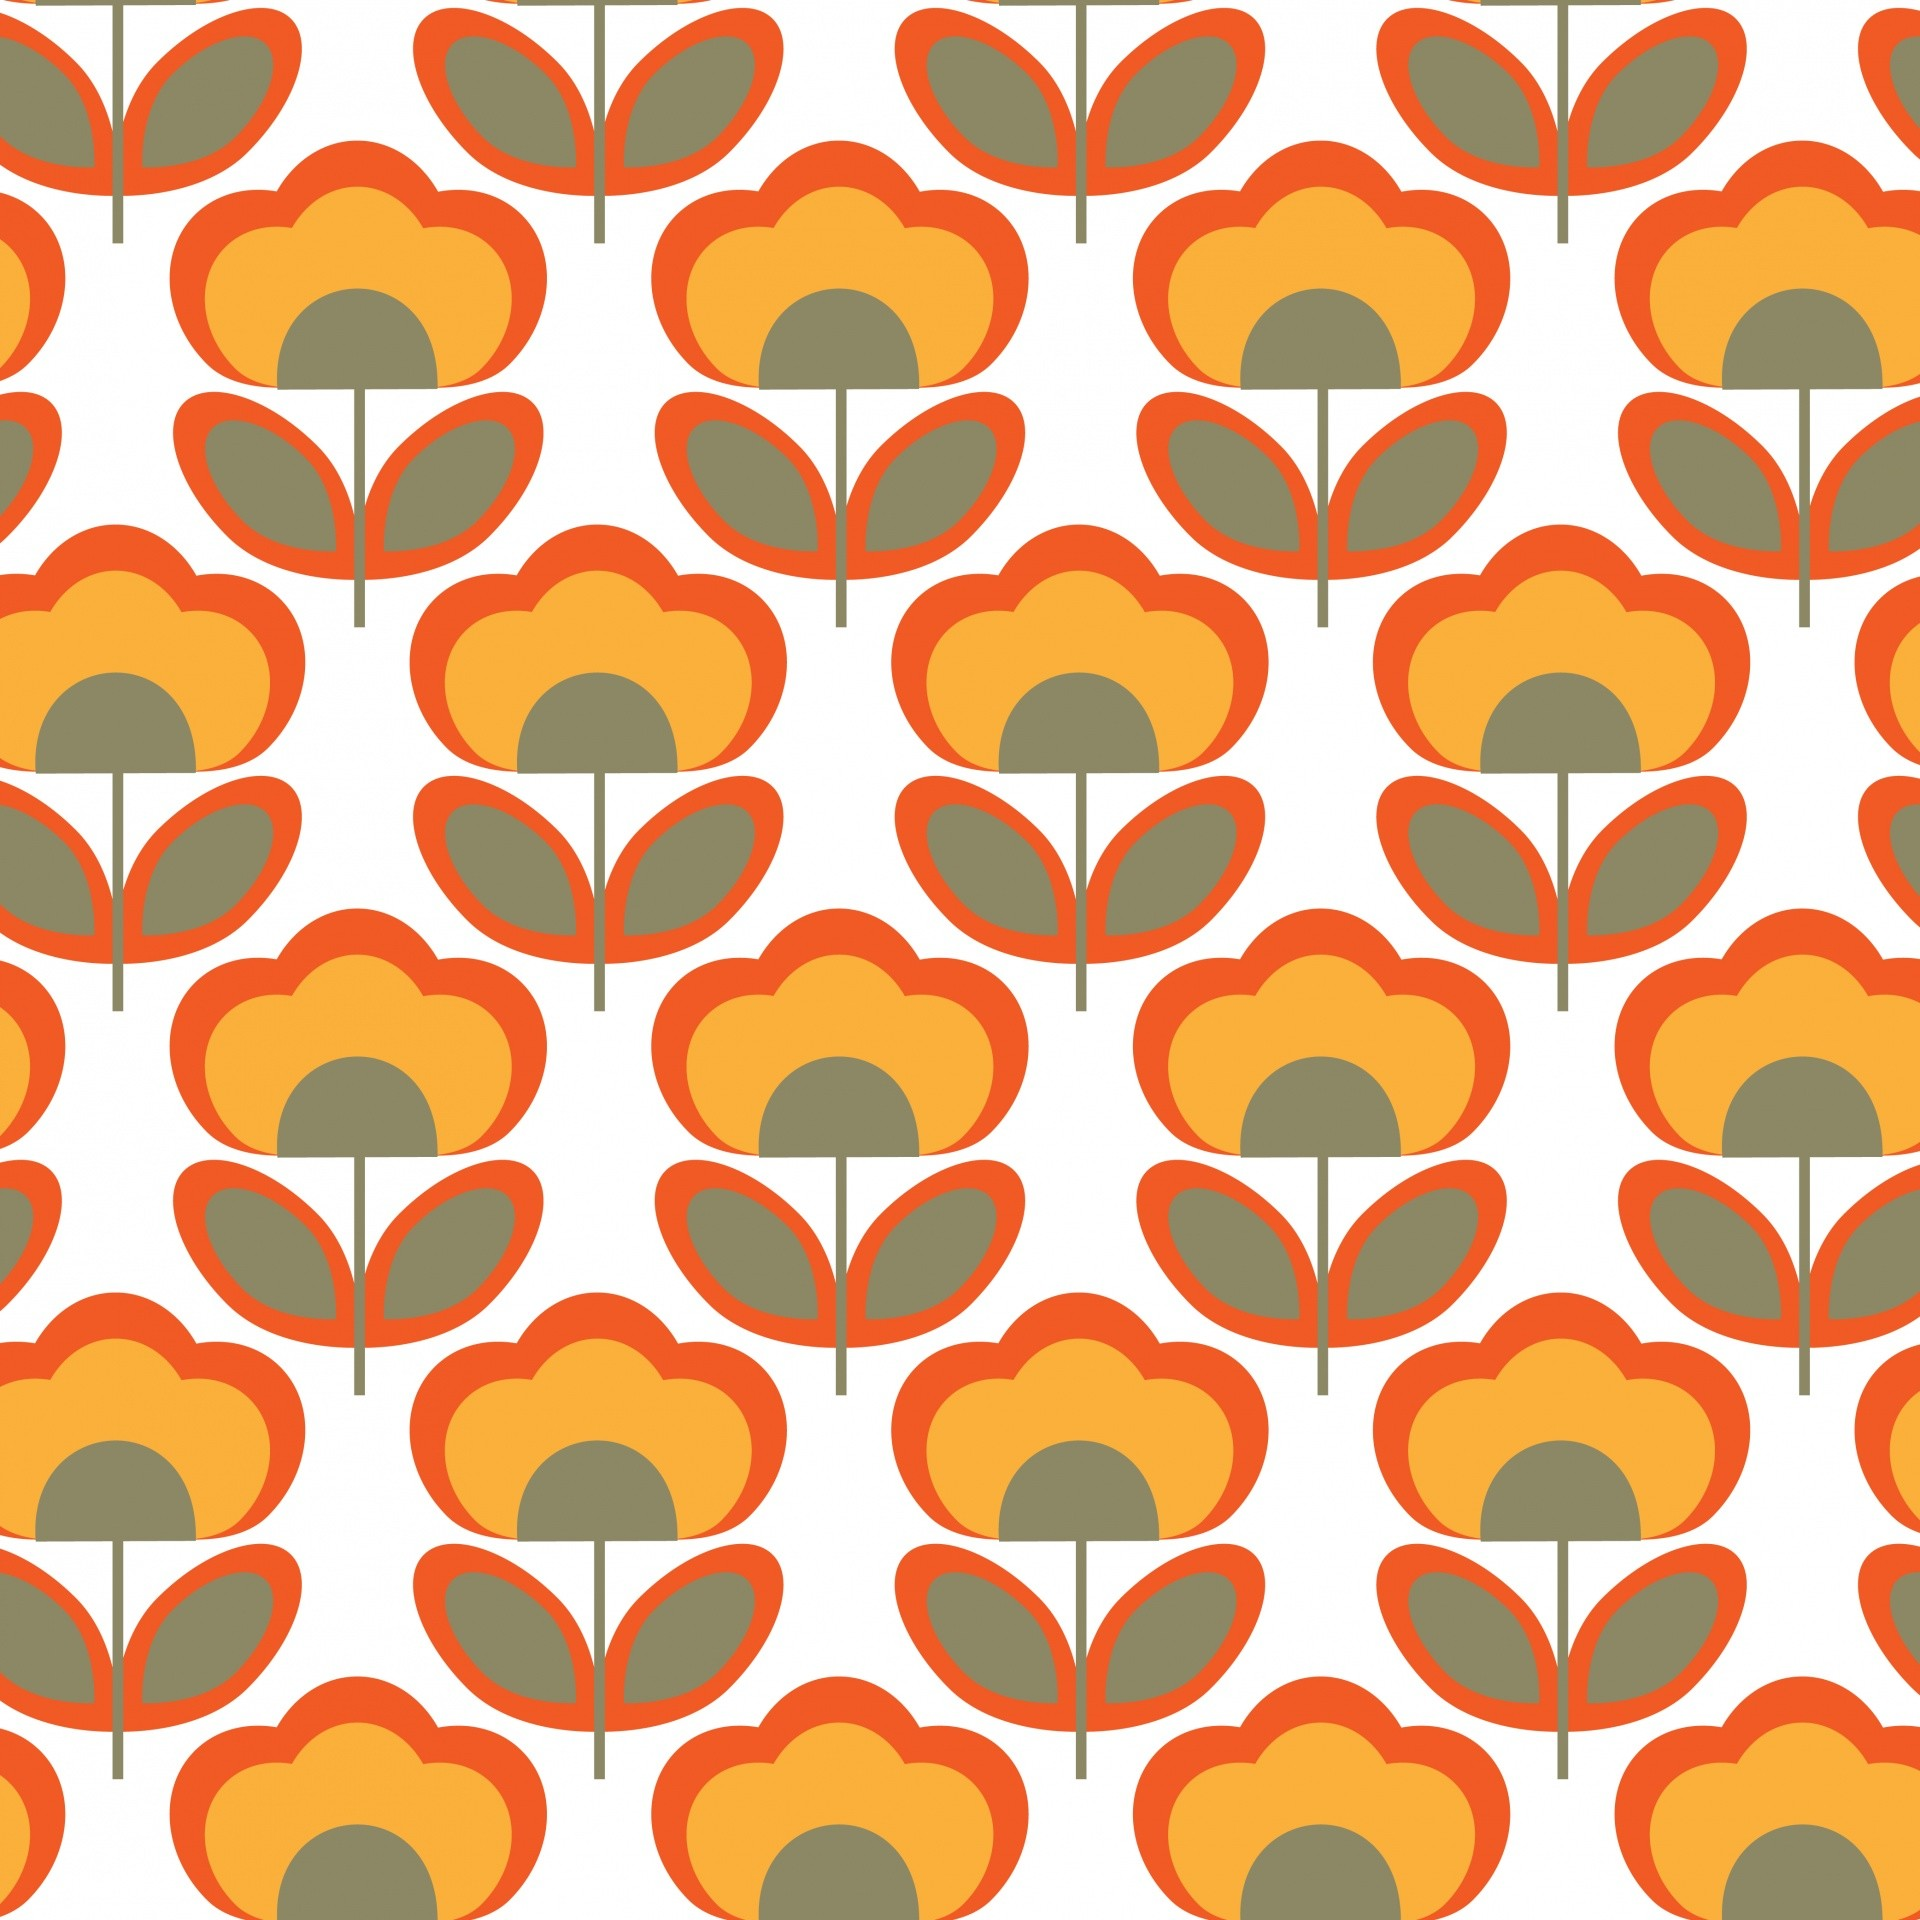 60s Retro Wallpaper 36 Images HD Wallpapers Download Free Images Wallpaper [1000image.com]